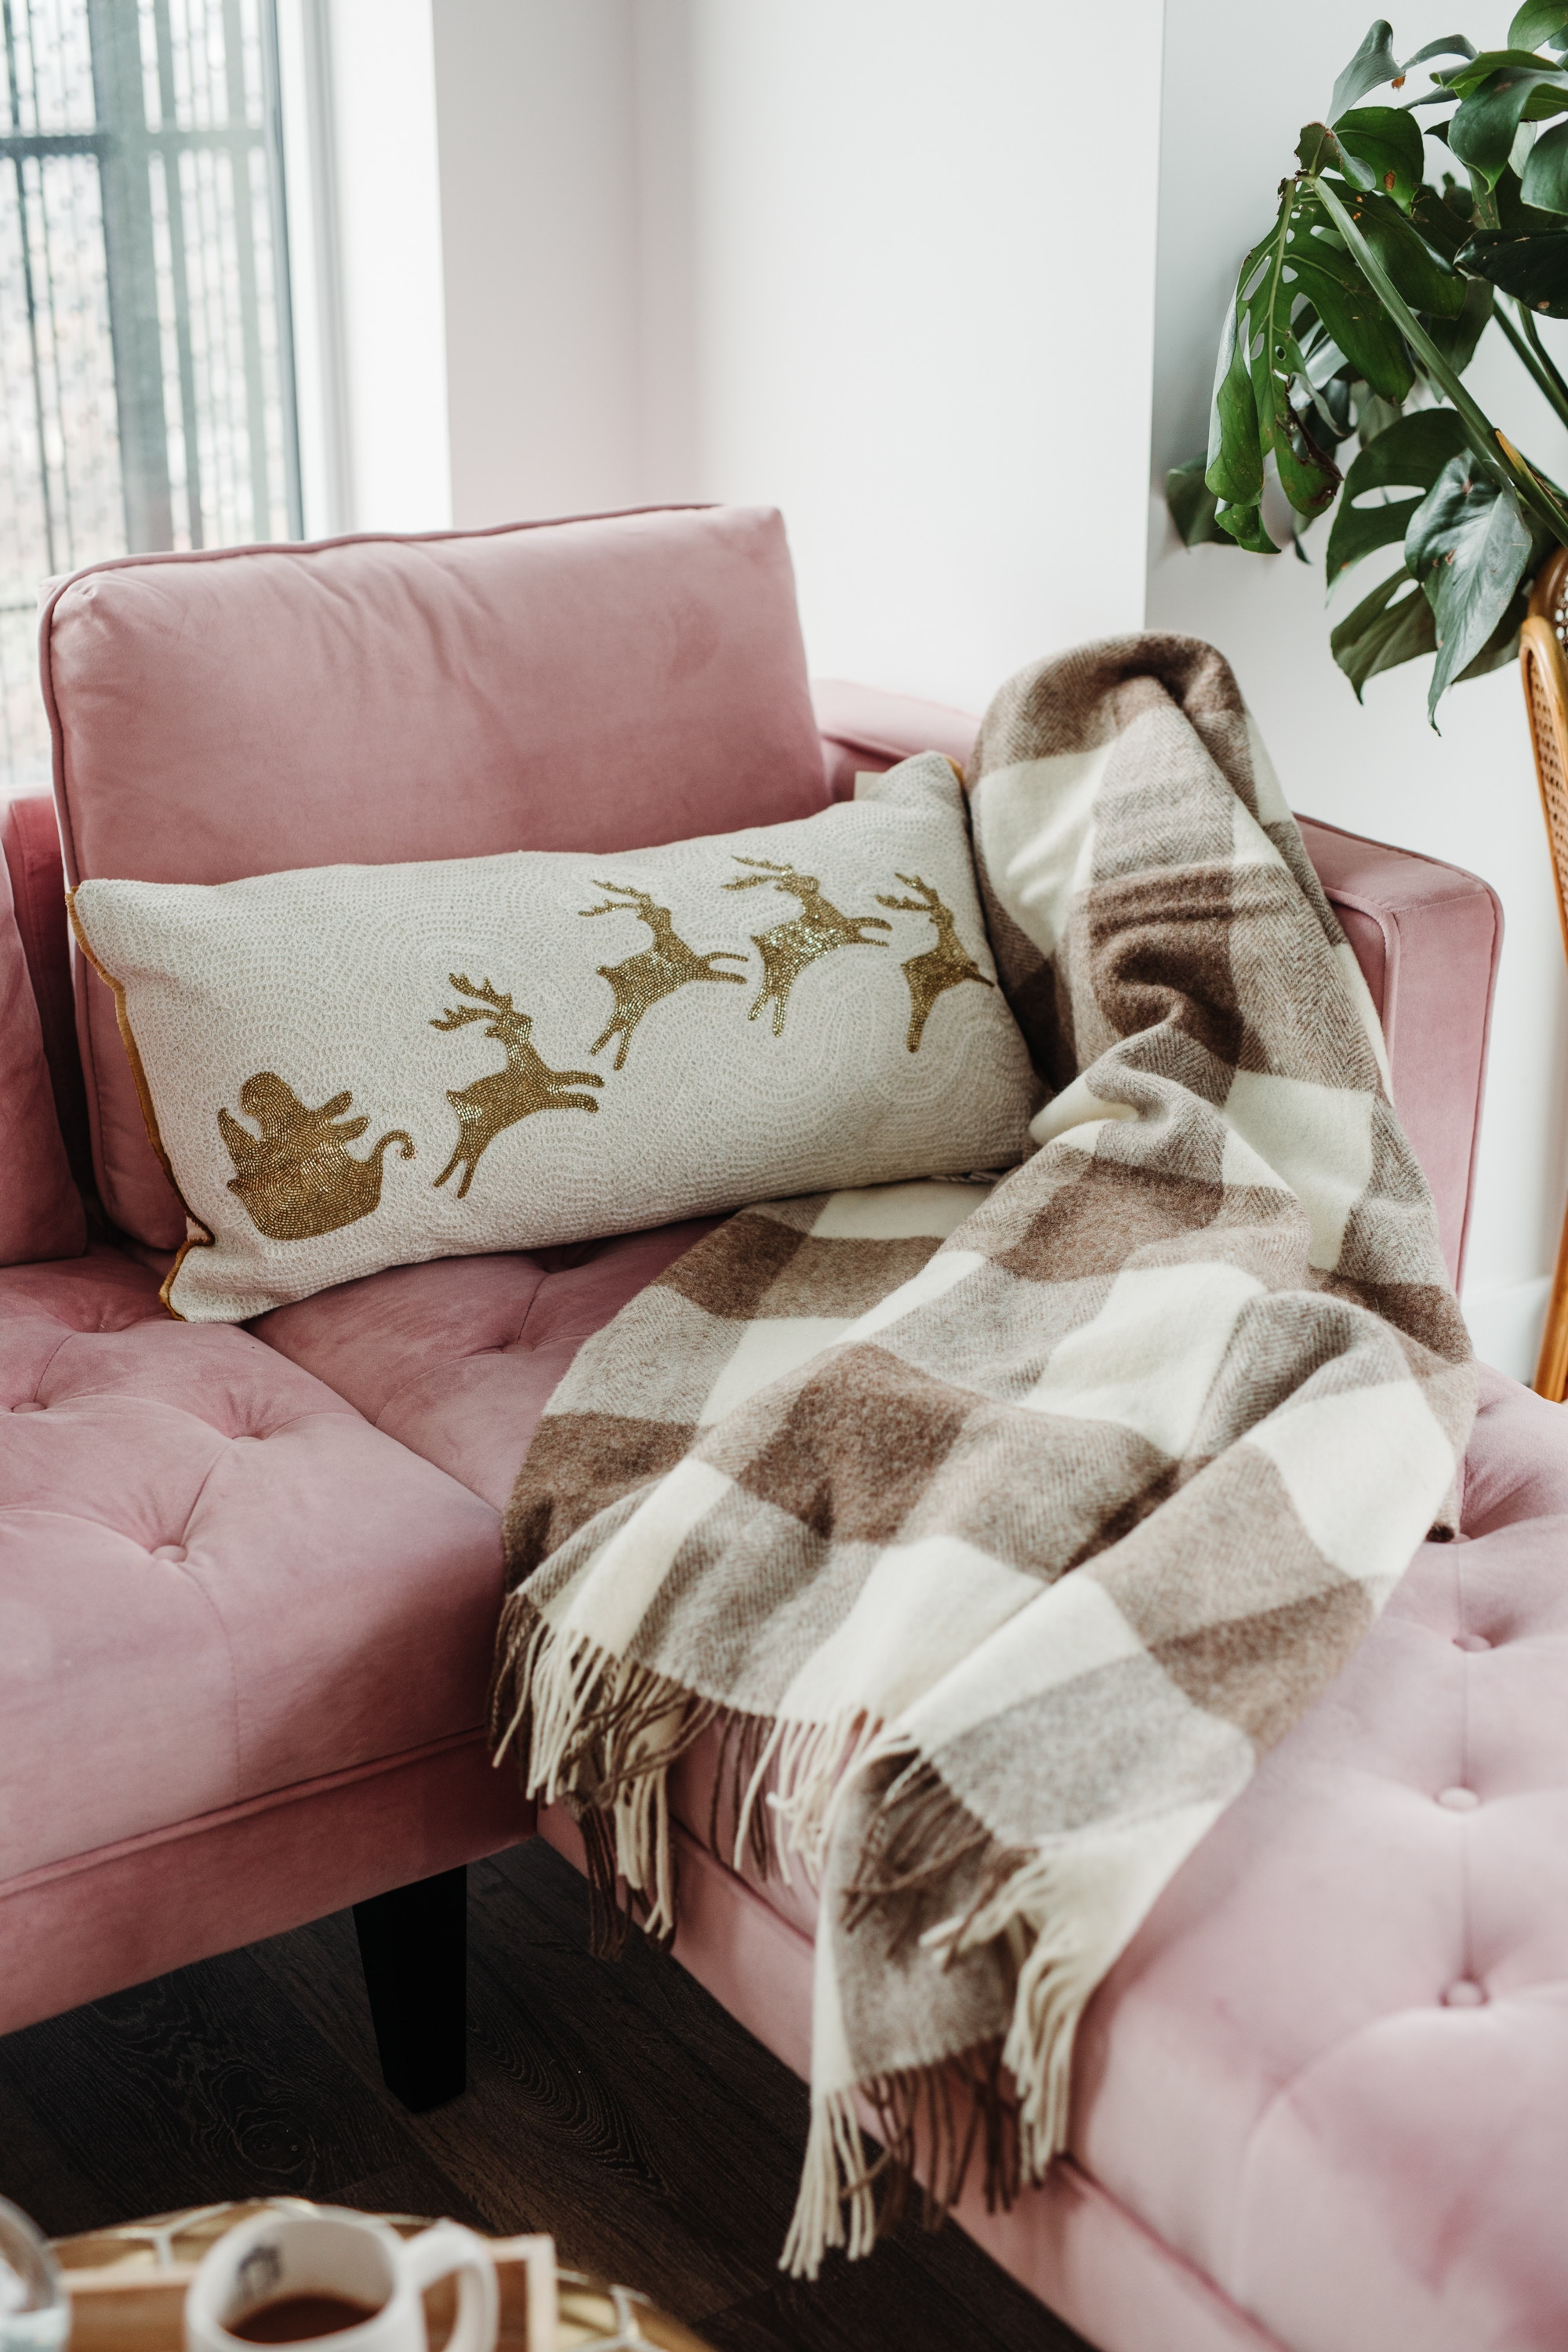 Beaded Santa sleigh couch pillow, wool throw - Christmas styling ideas for your couch